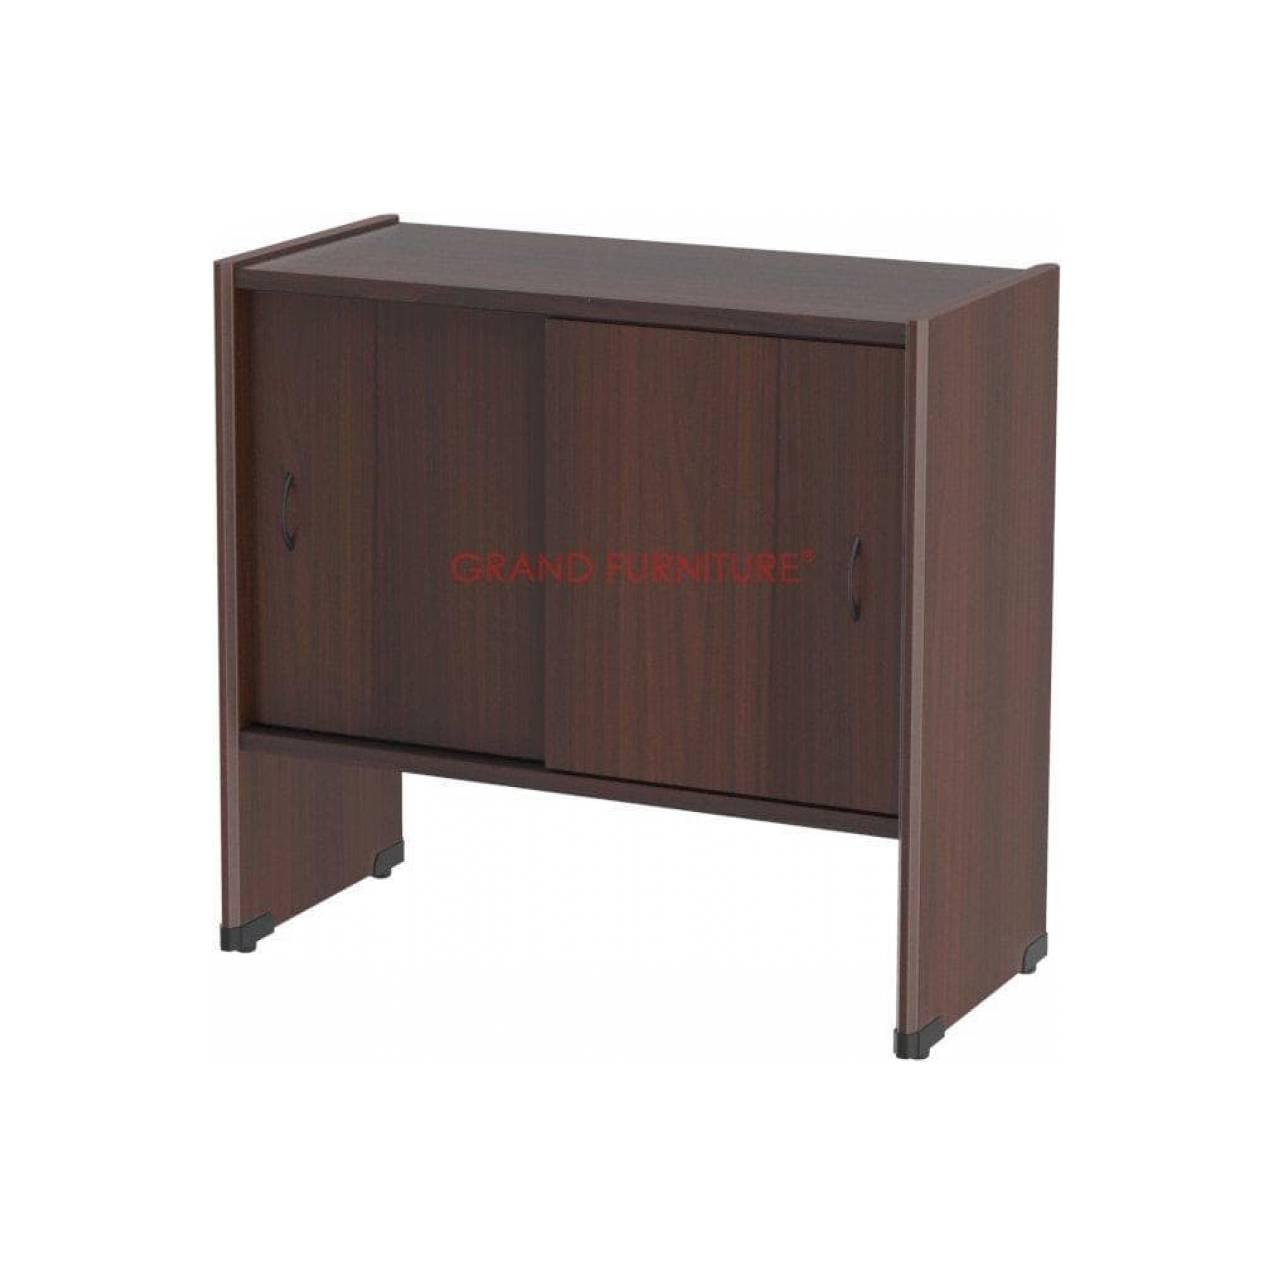 GRAND FURNITURE Meja Kabinet/ Meja Samping Pintu Sliding DC S1